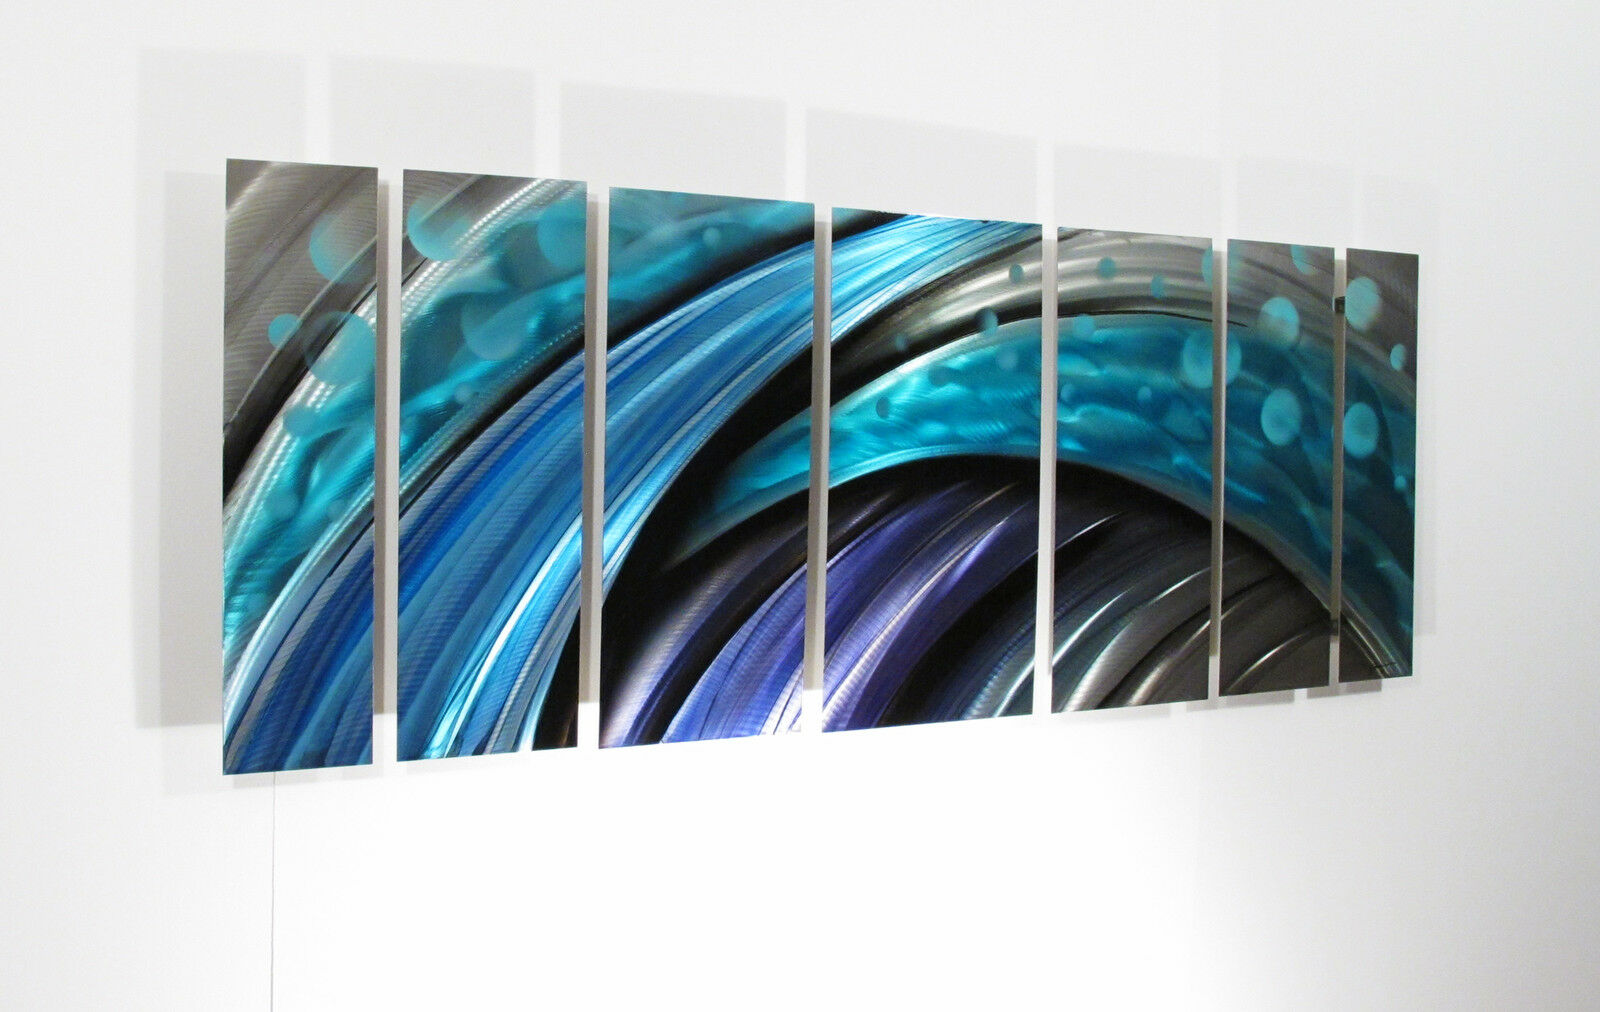 Blue Metallic Paint For Walls Popular Uk Wall Painting: LARGE Metal Wall Art Sculpture Abstract Wave Painting